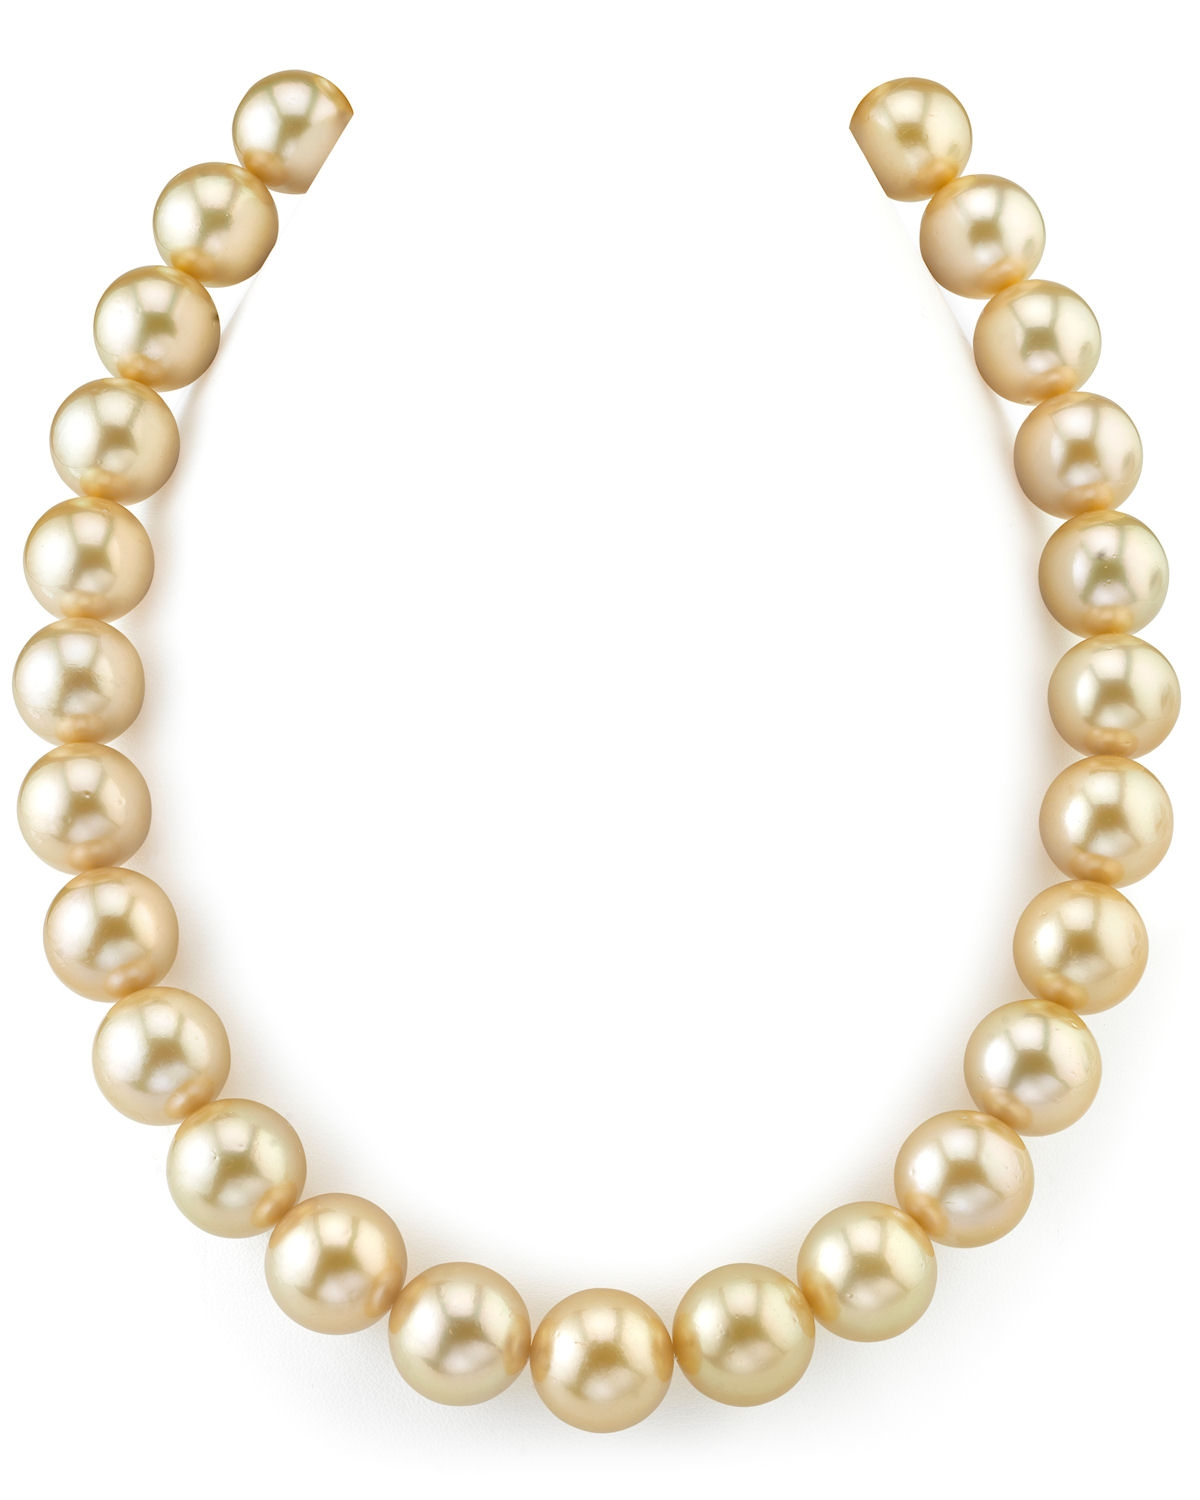 15-17mm Golden South Sea Pearl Necklace - AAAA Quality